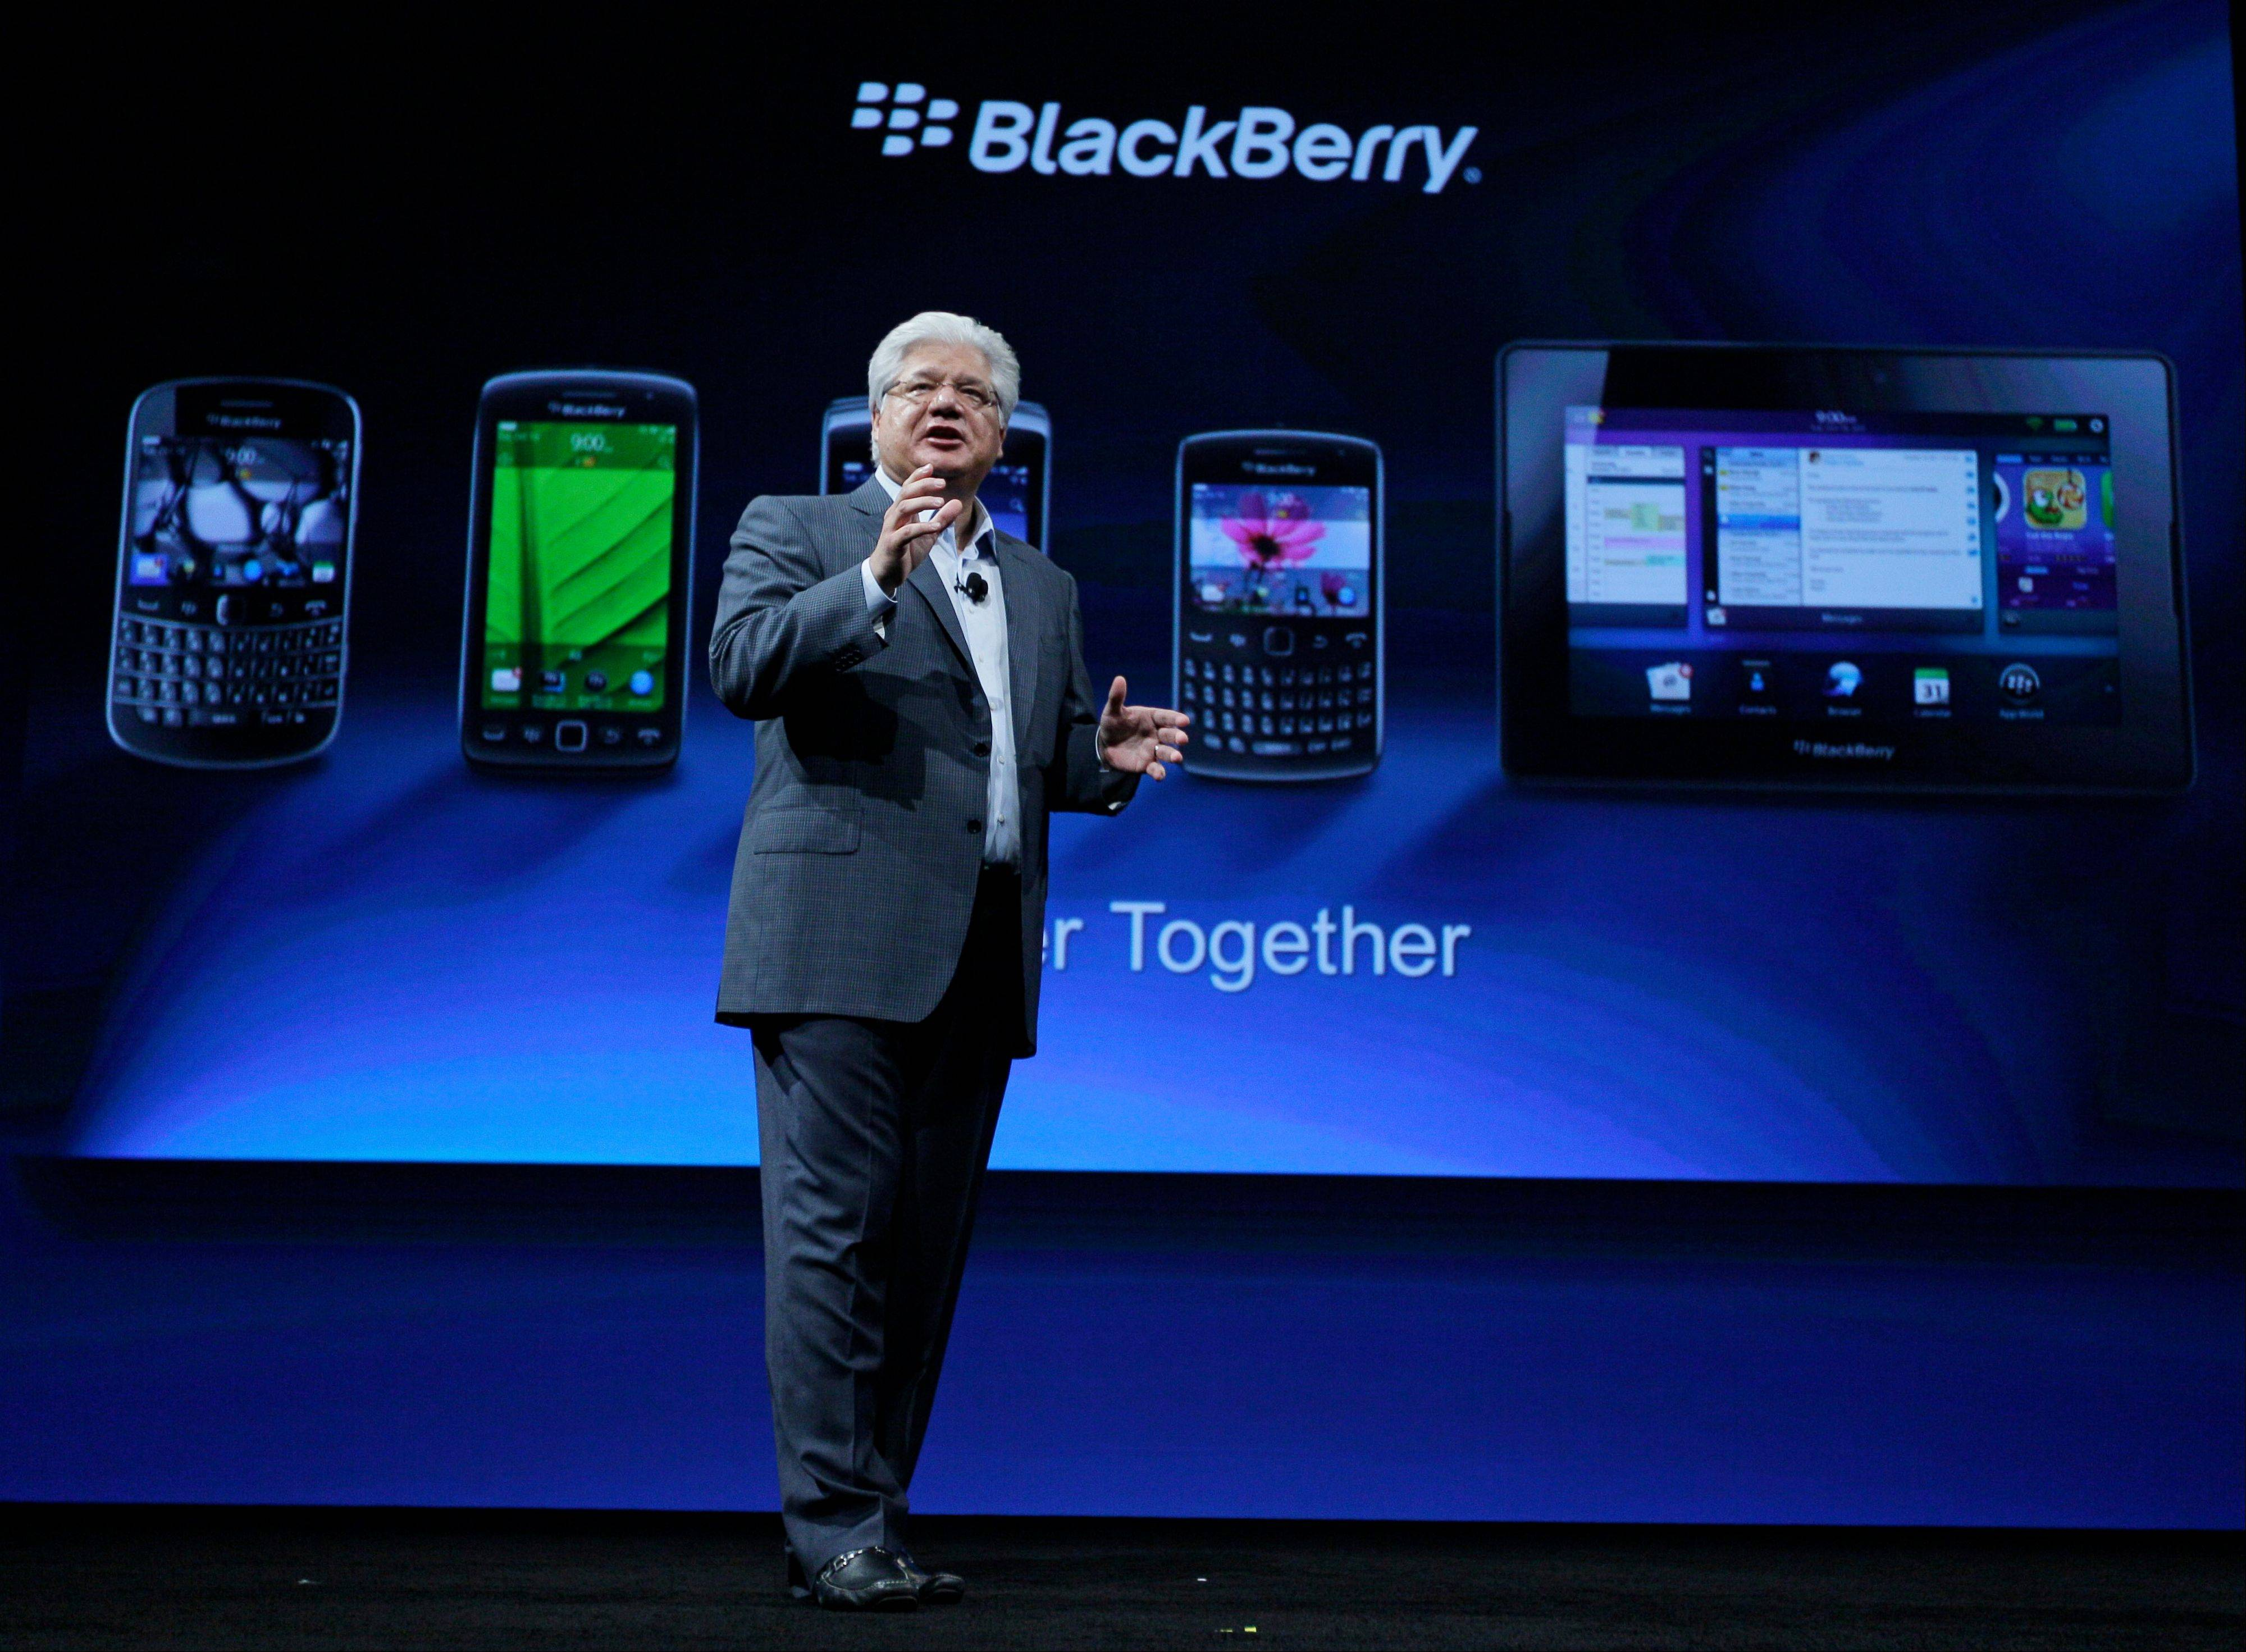 Mike Lazaridis, inventor of the BlackBerry smartphone, is opening the Mike & Ophelia Lazaridis Quantum-Nano Centre in Waterloo, Ontario, aiming to re-create the conditions that made AT&T's Bell Labs a hive of technological innovation in the early 1960s and laid the groundwork for the success of Silicon Valley.